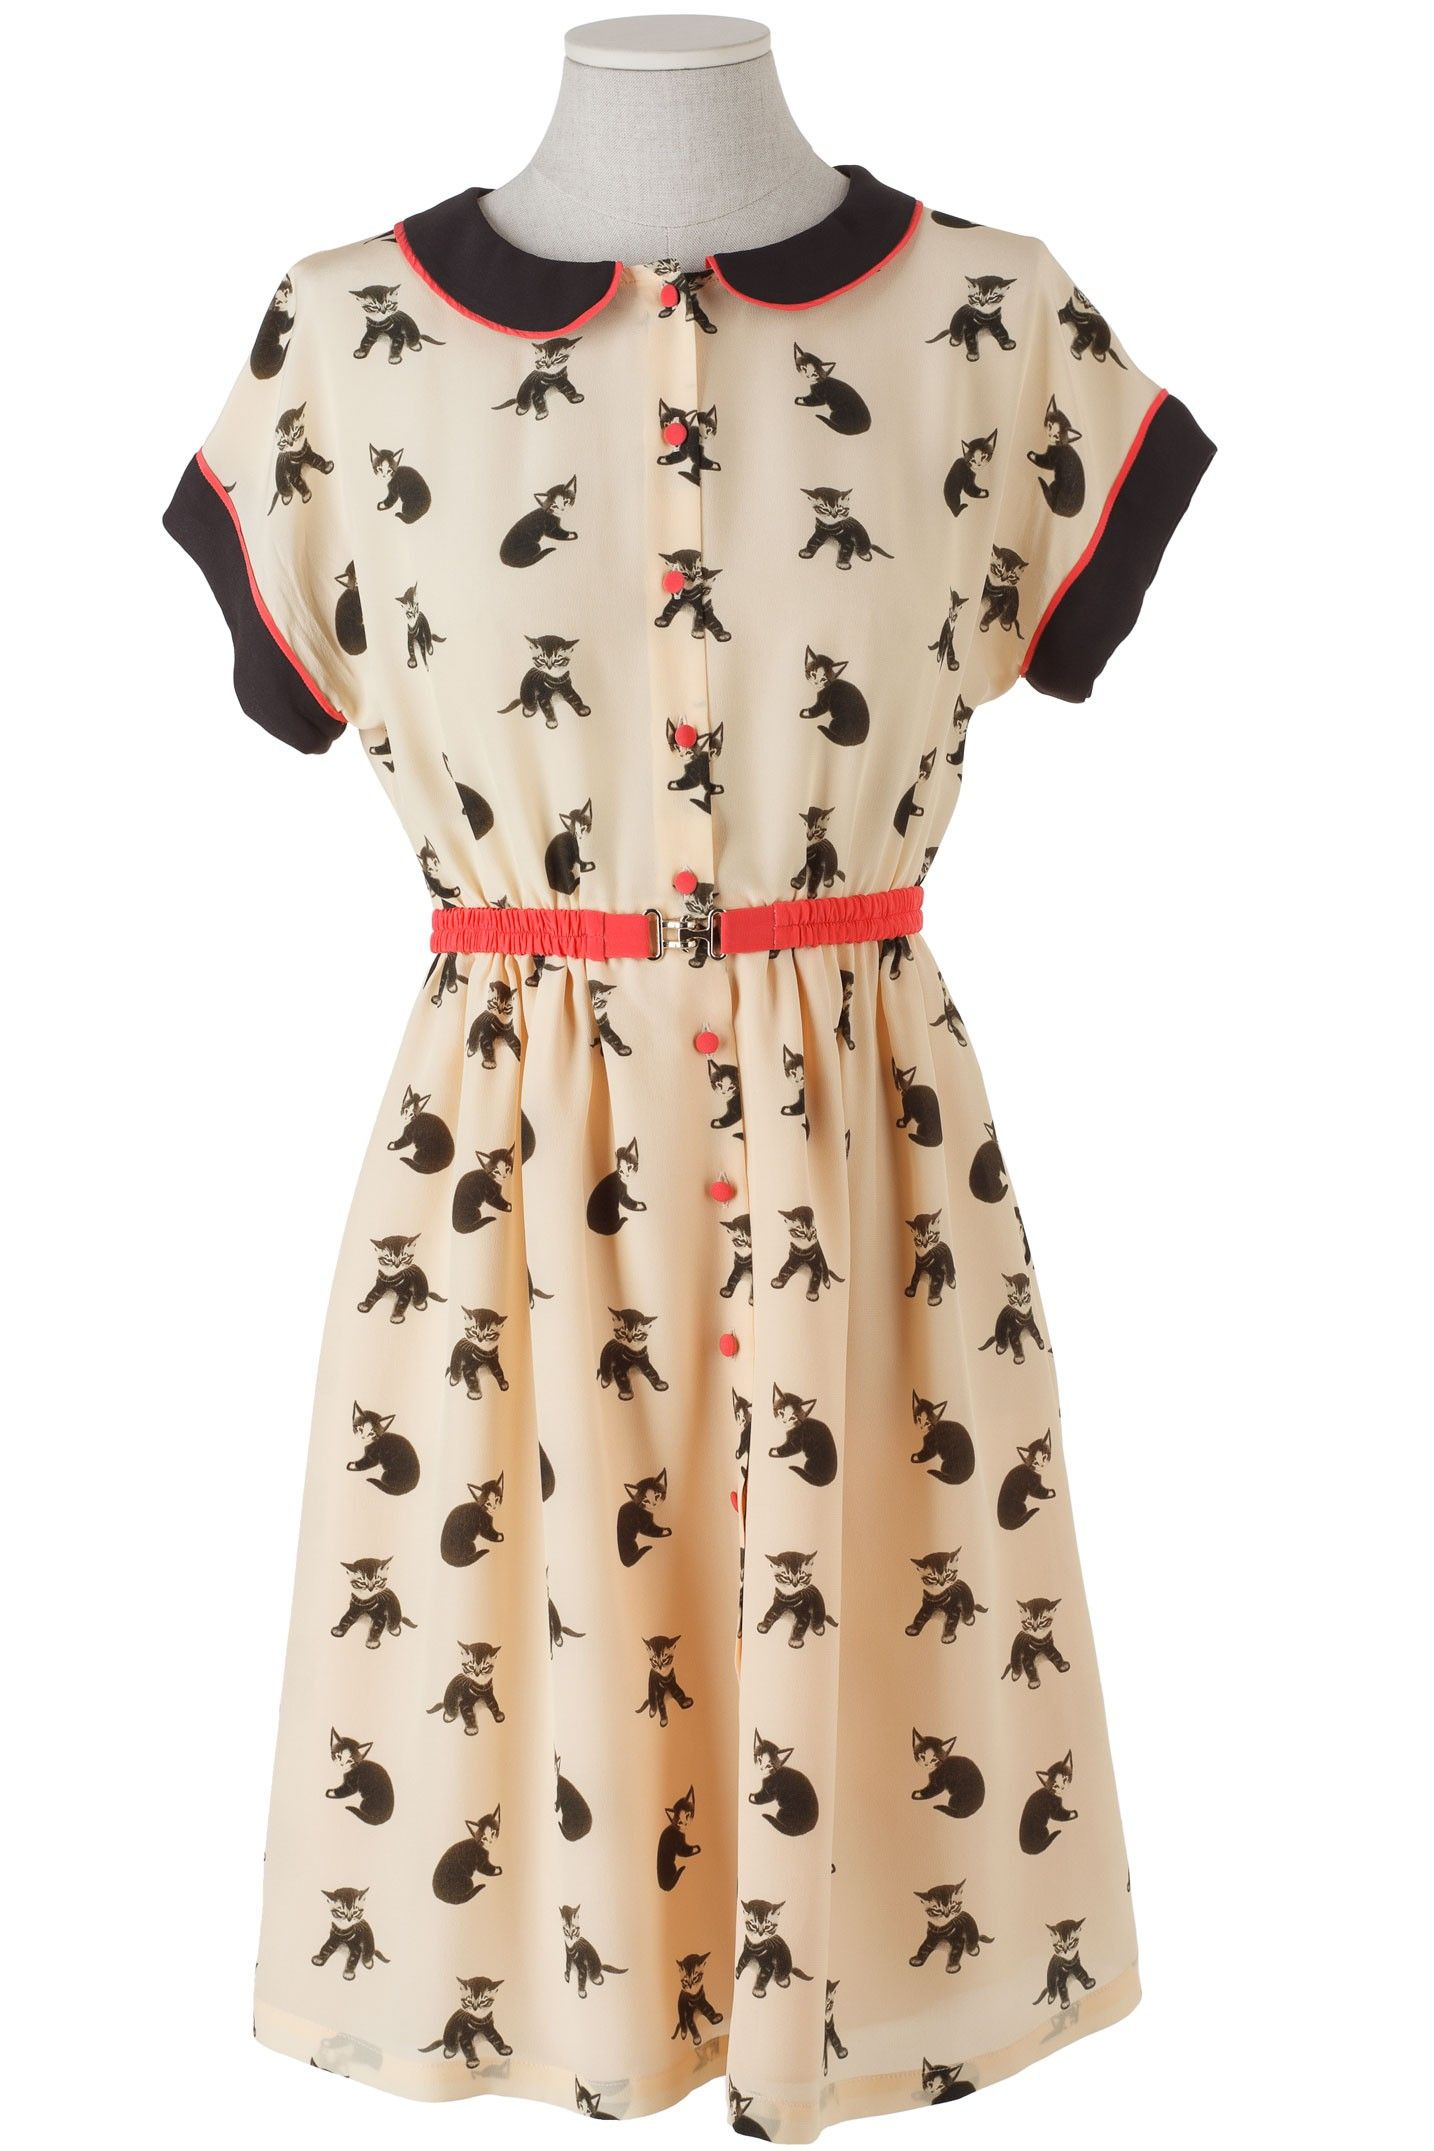 Abito Chemisier in seta con gattini cute cat print dress